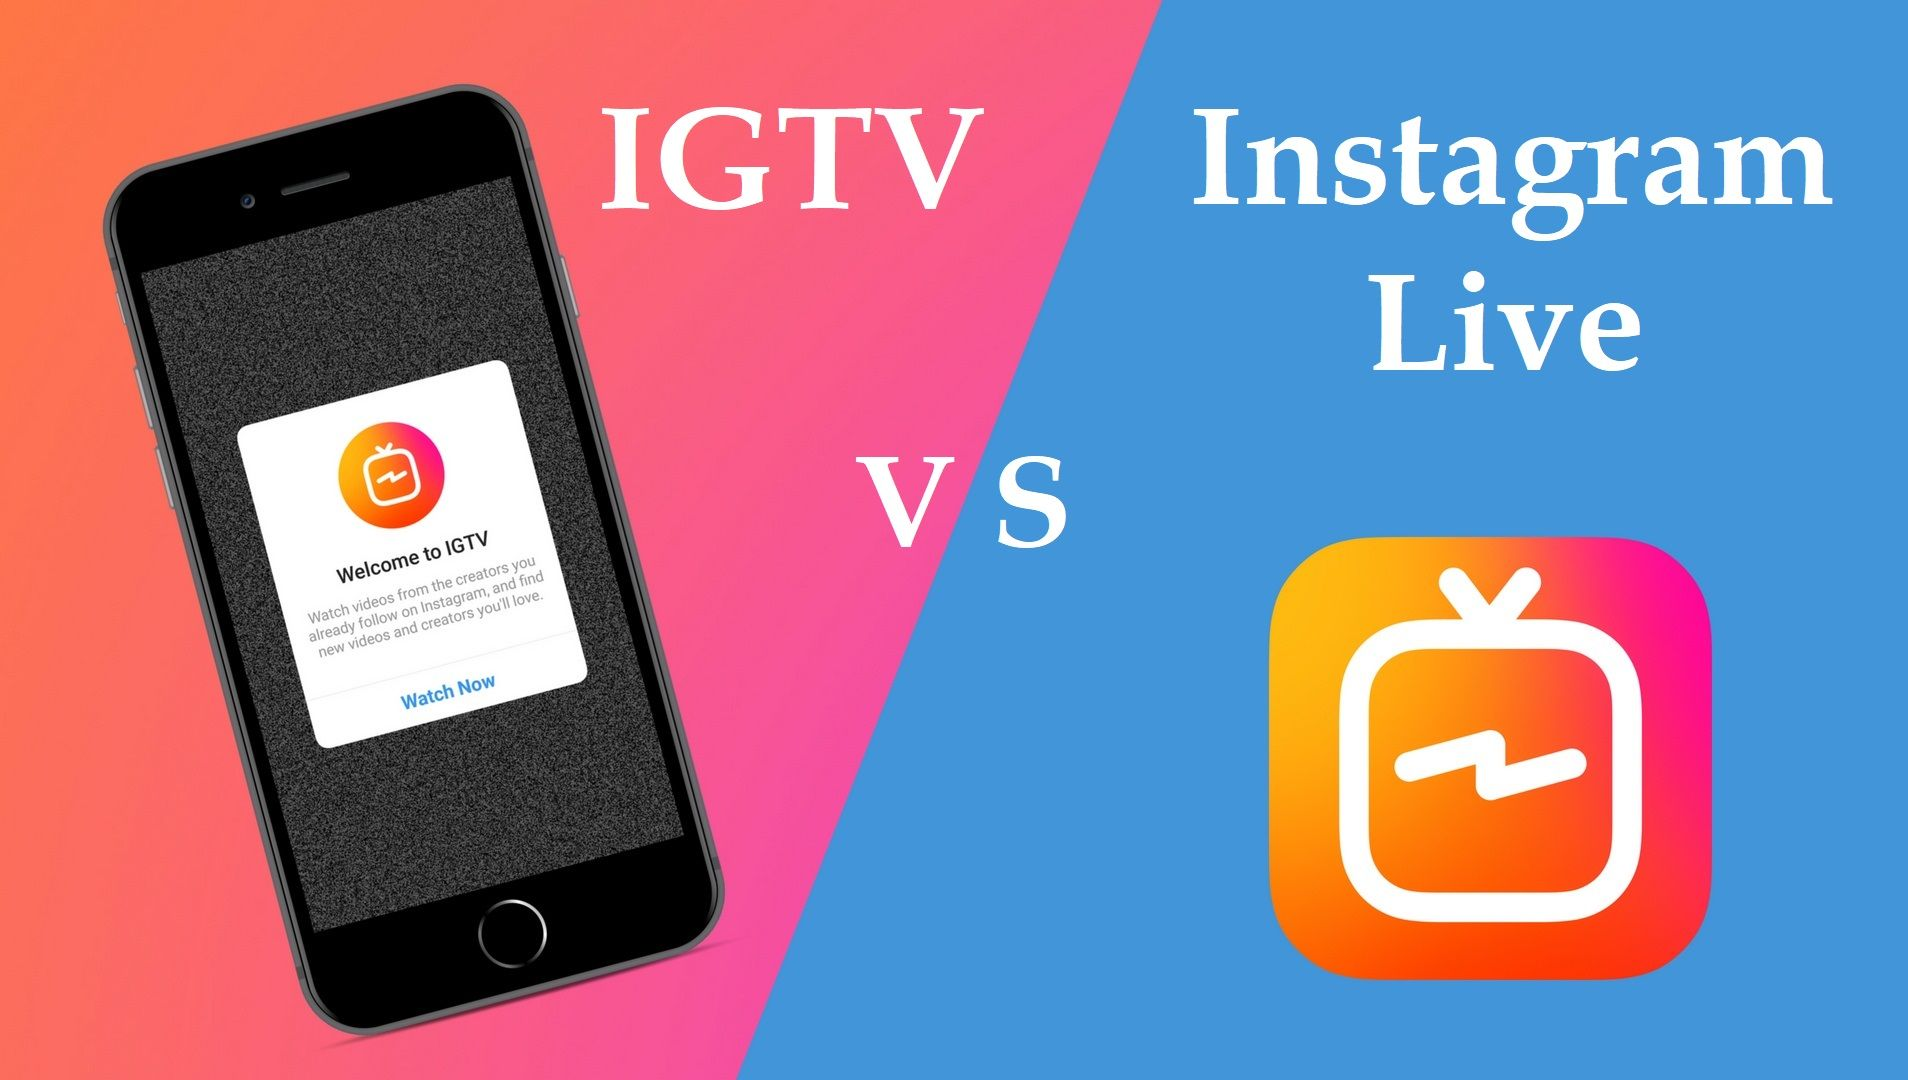 Igtv Vs Instagram Live What S The Difference Instagram Live